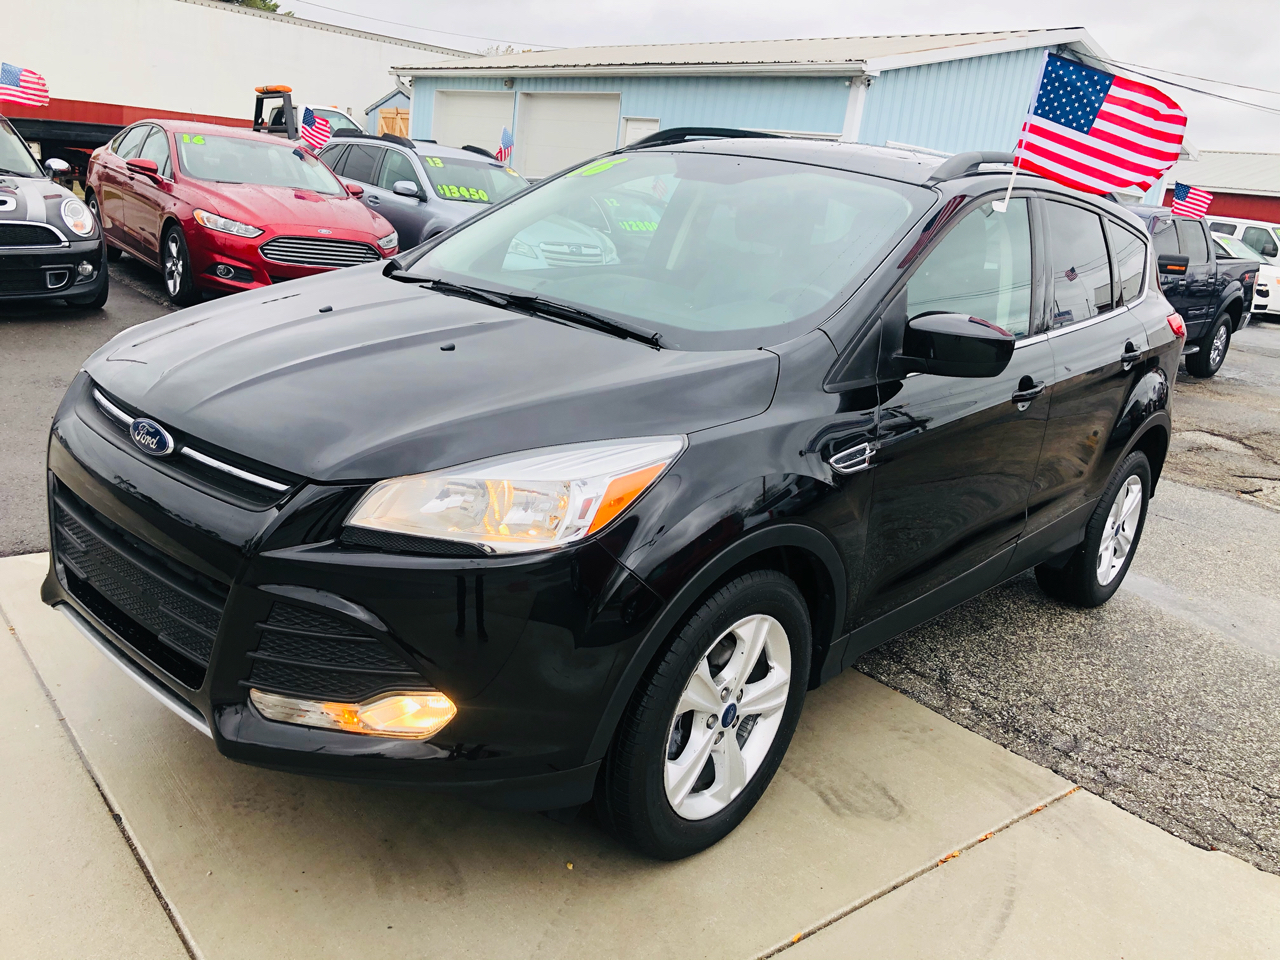 Ford Escape 2WD 4dr I4 Auto XLT 2016